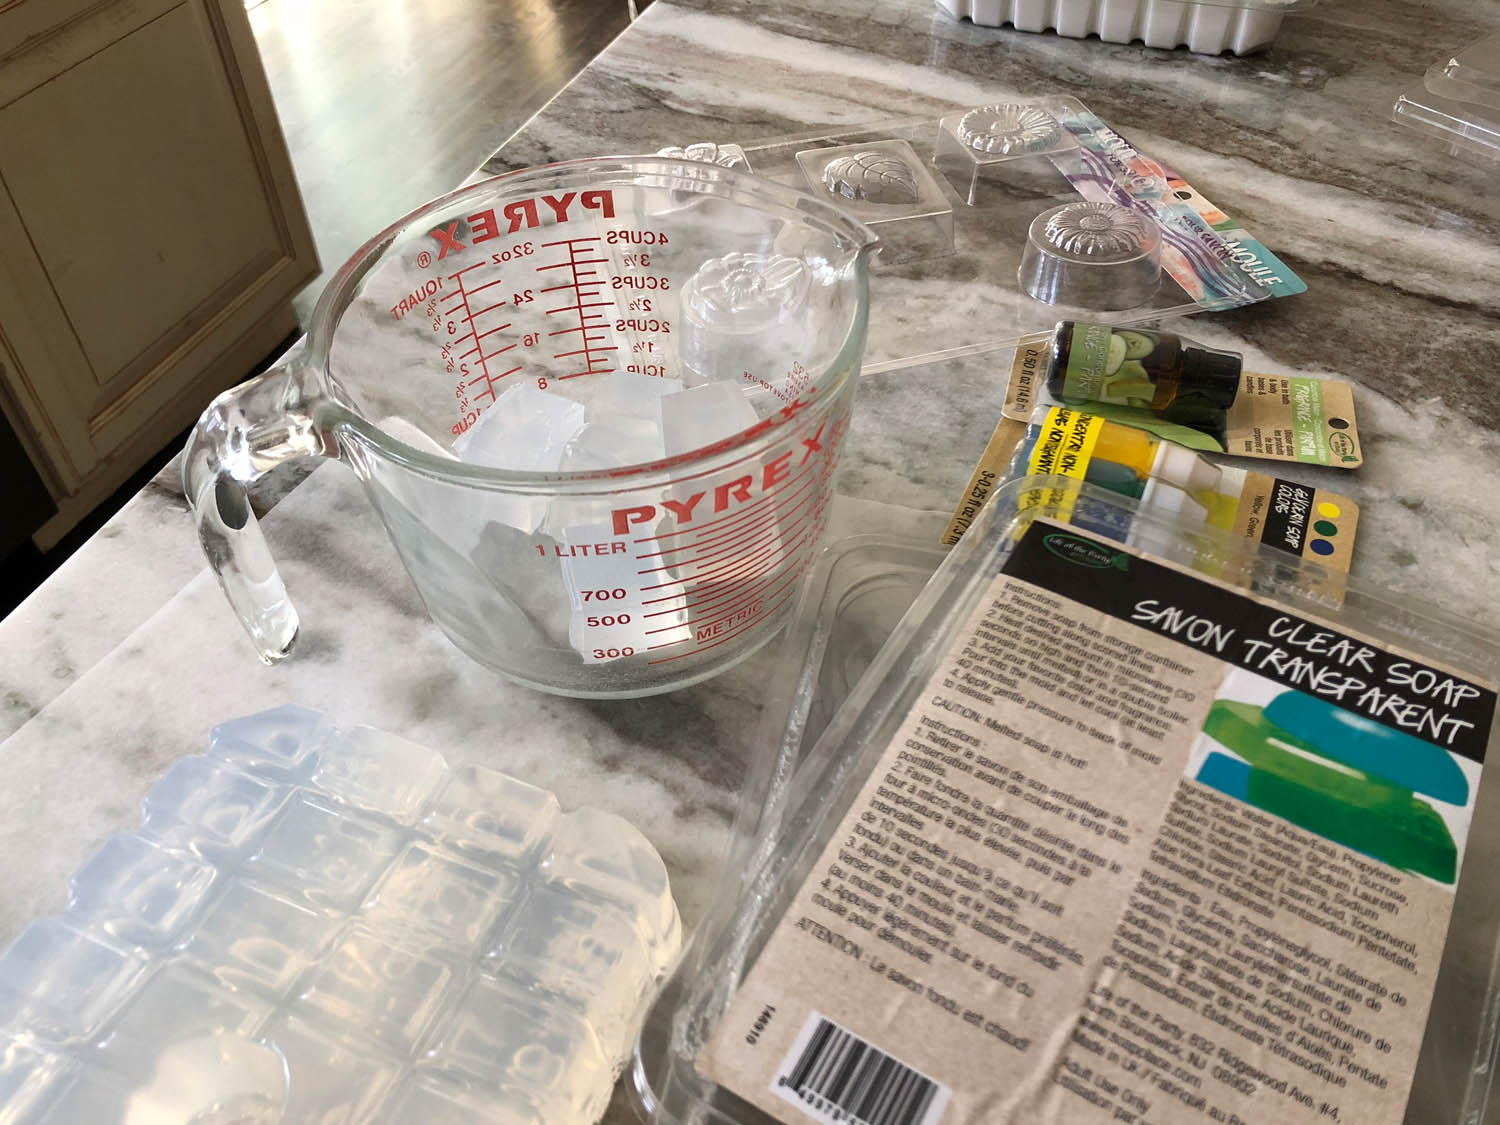 products for making clear soap and measuring cup to melt